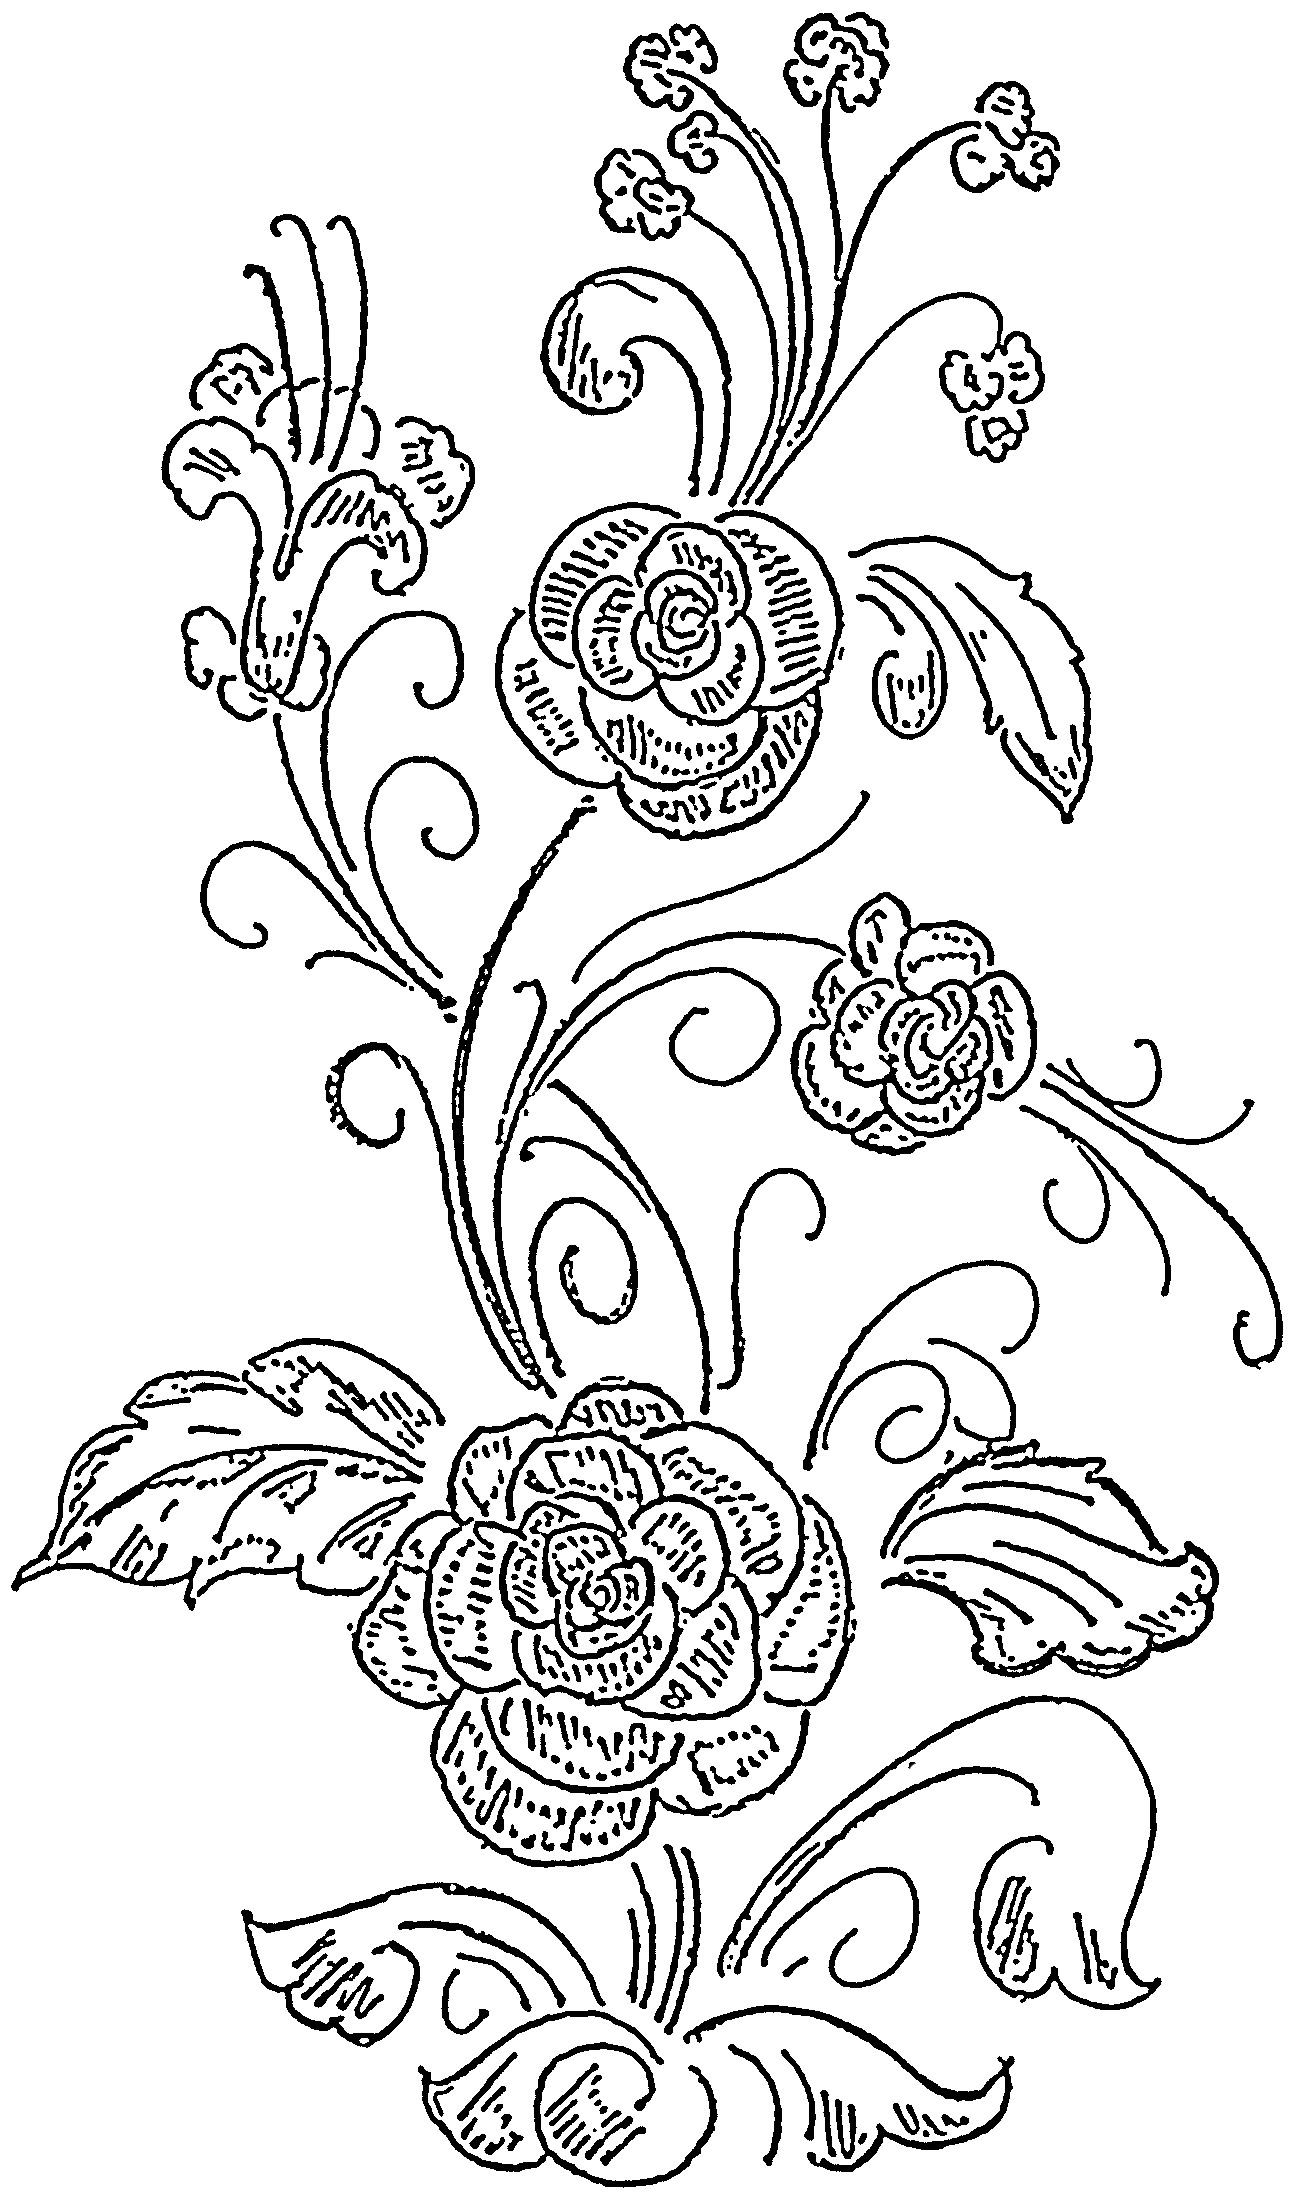 Glass Painting Patterns Flower Design 40 Glass Painting